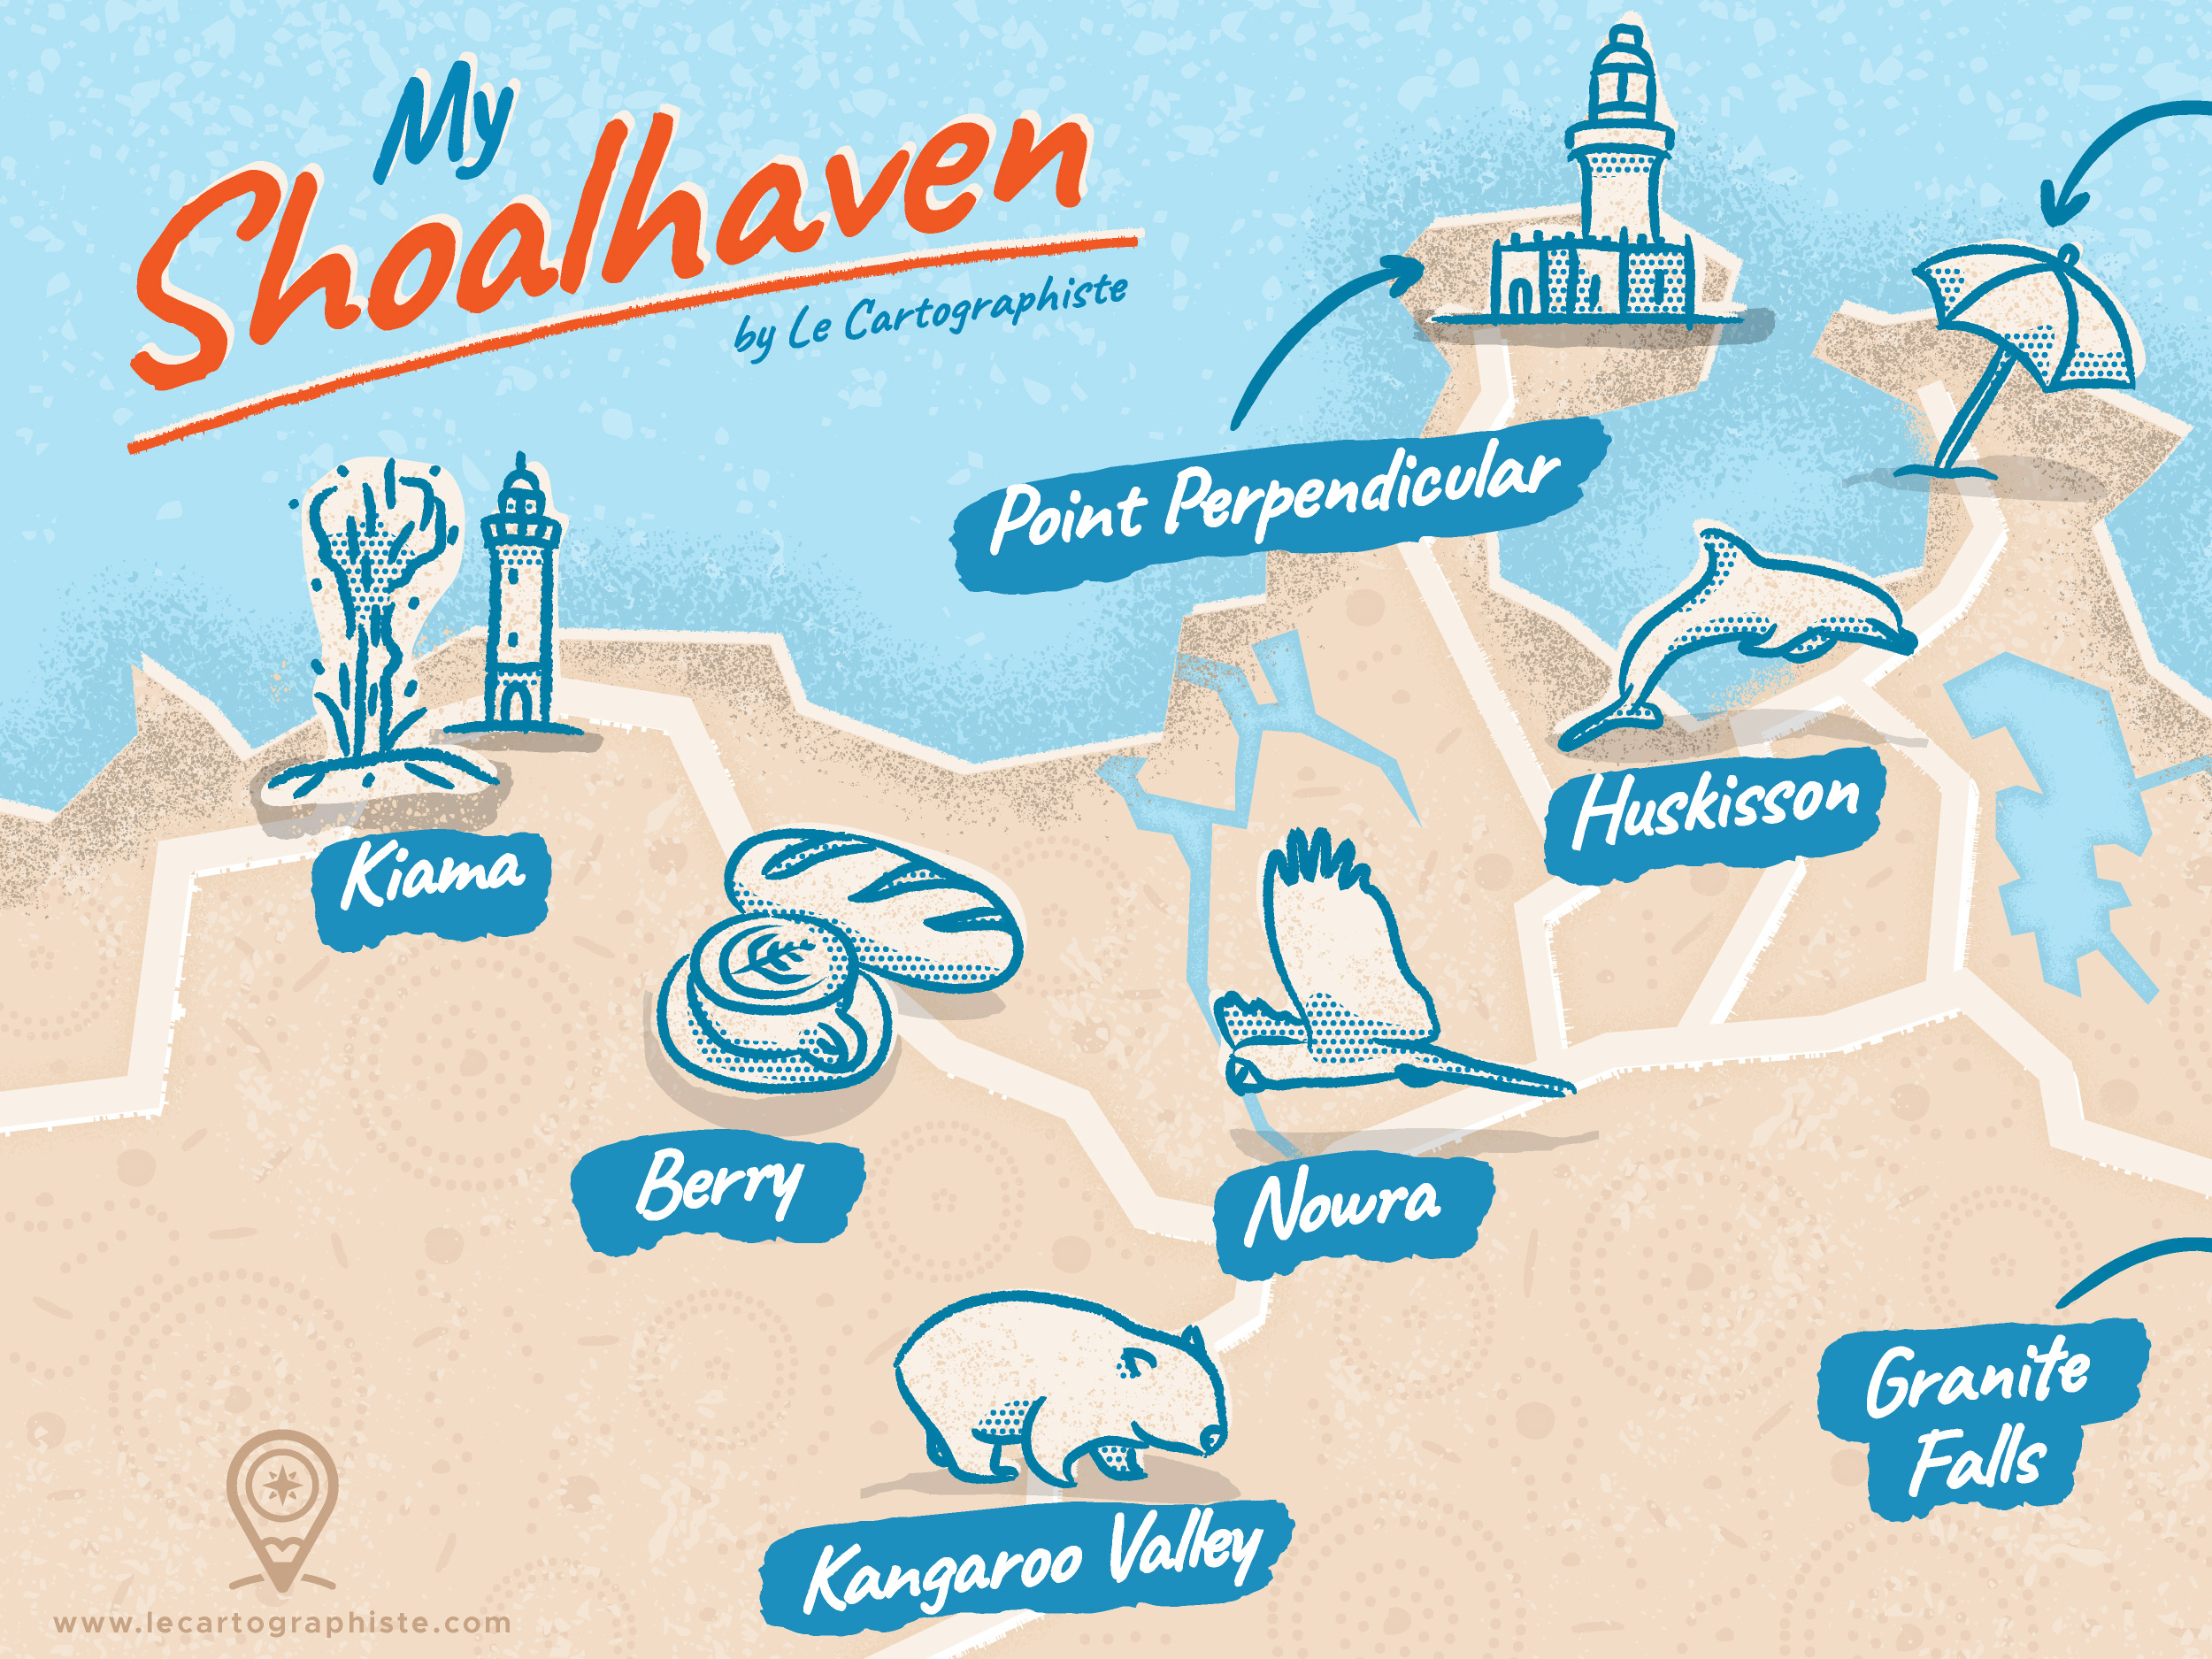 1st Close up of the Shoalhaven map